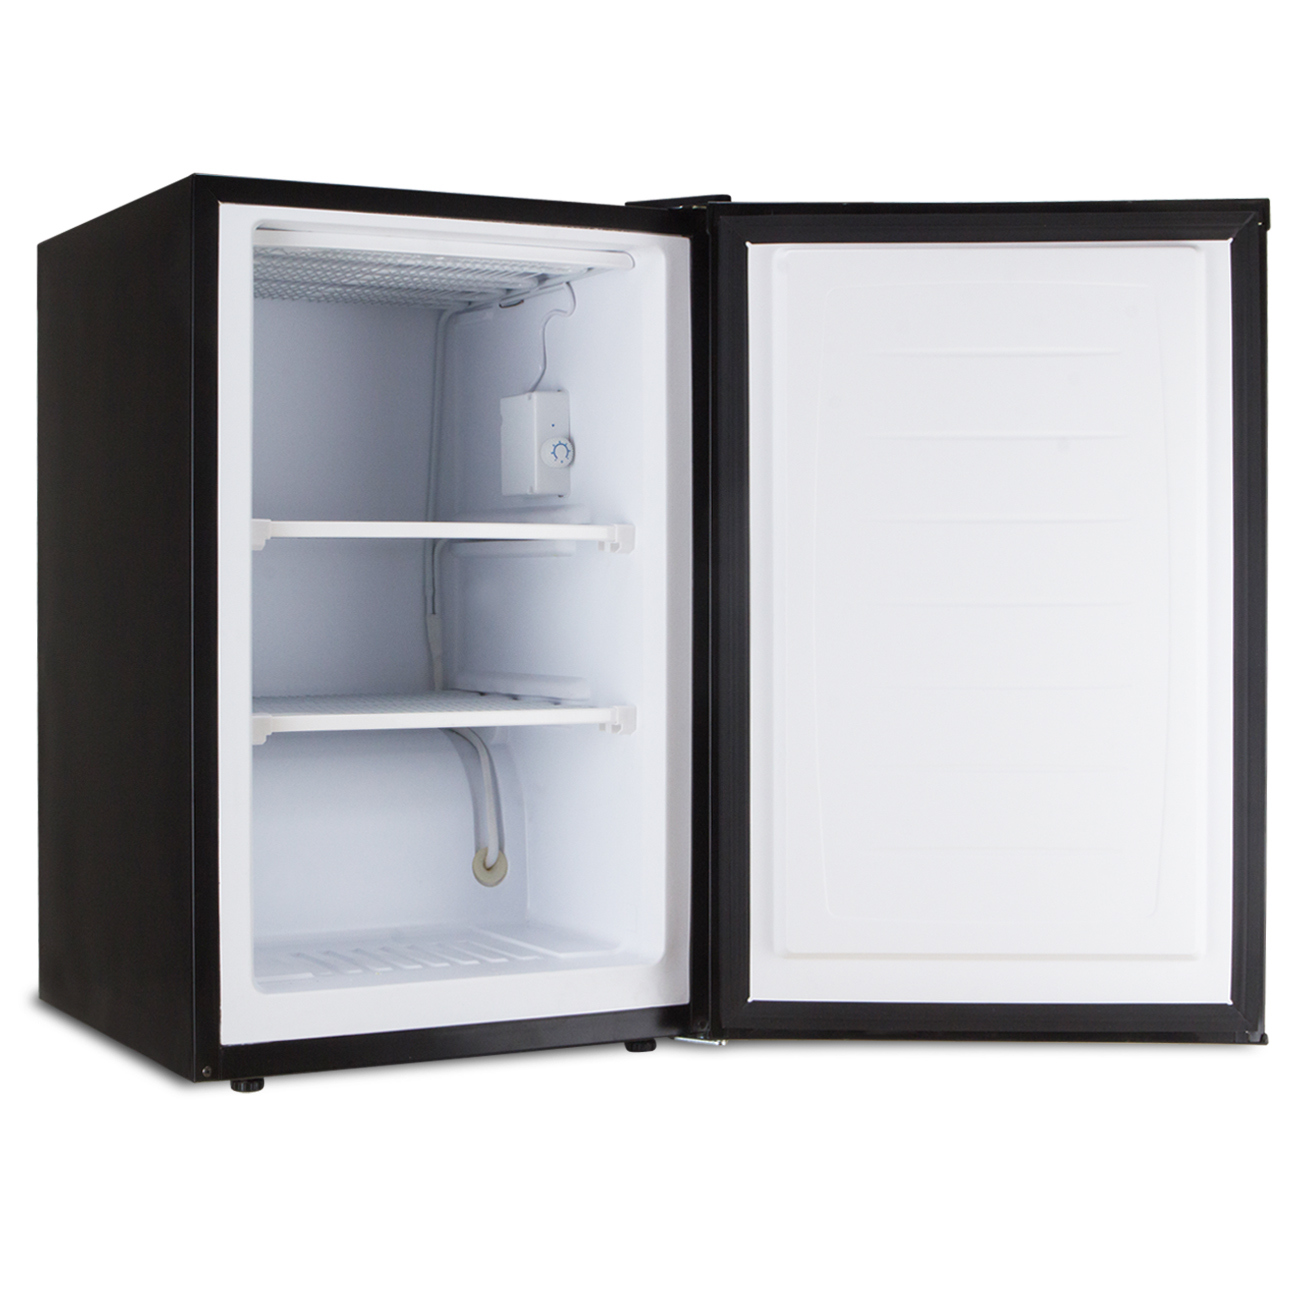 Compact Single Door Reversible Upright Freezer Appliances